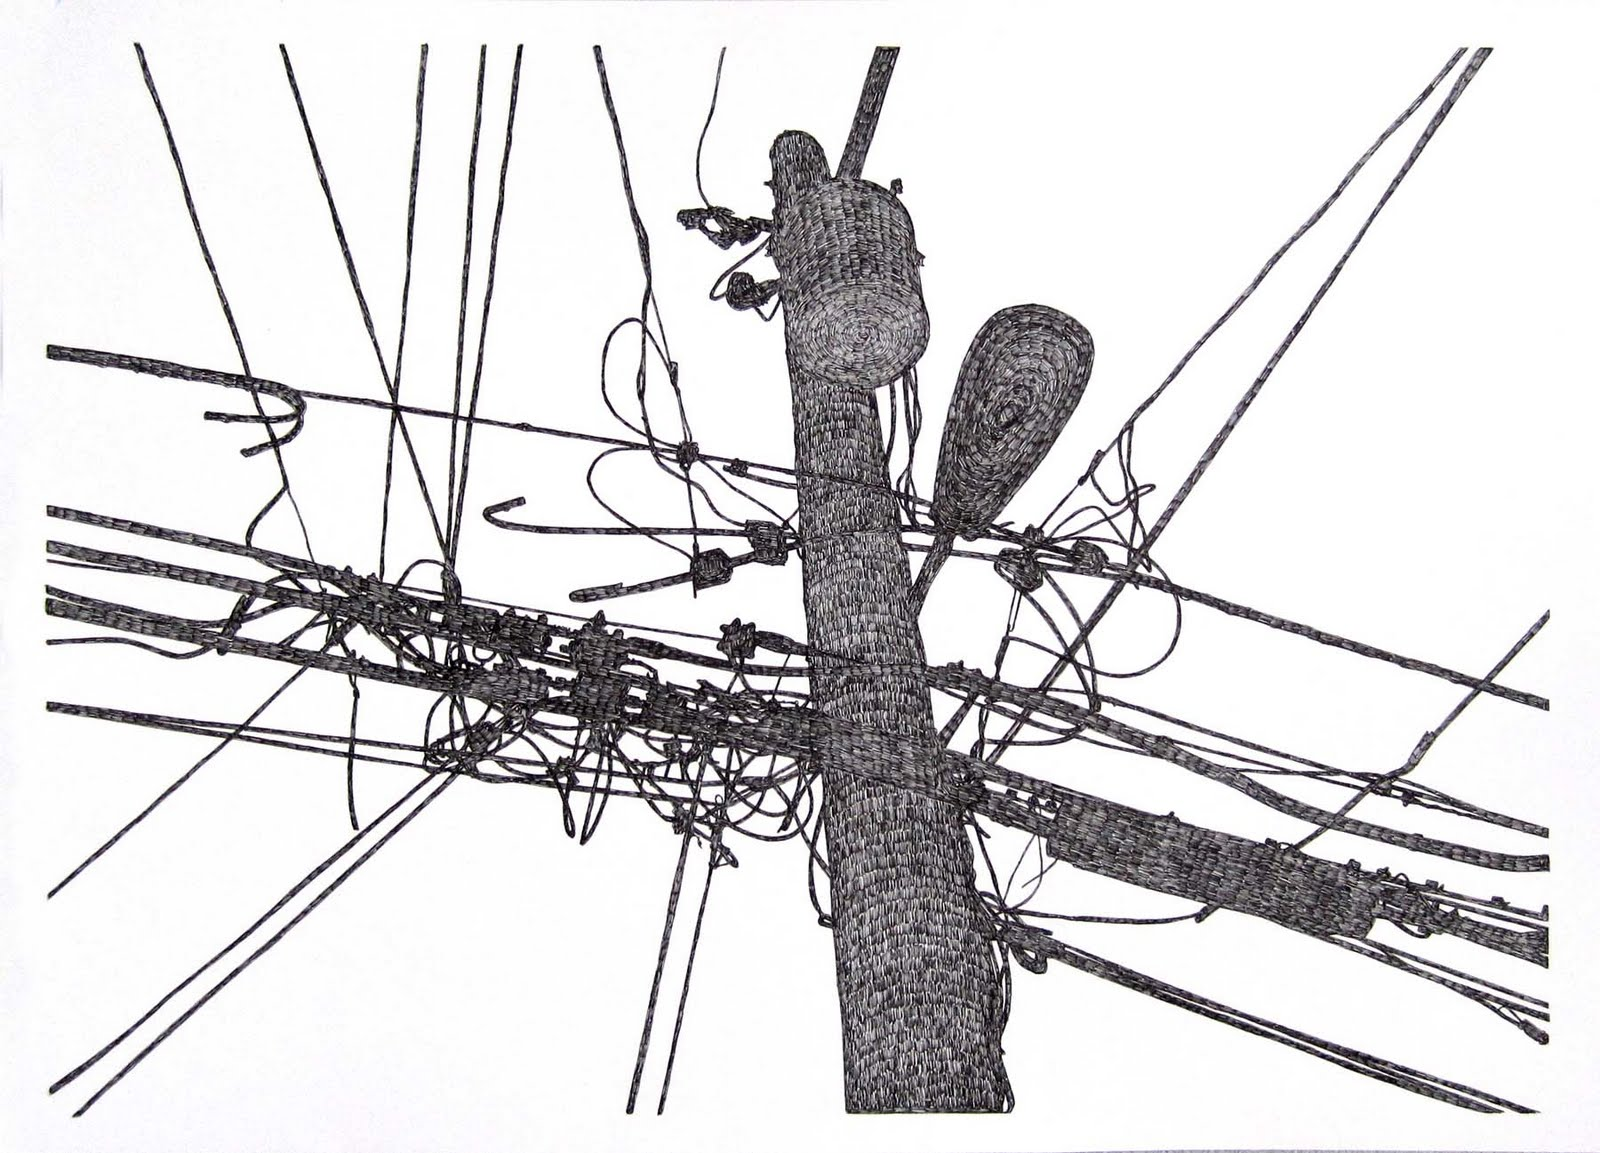 Telephone Pole Drawings